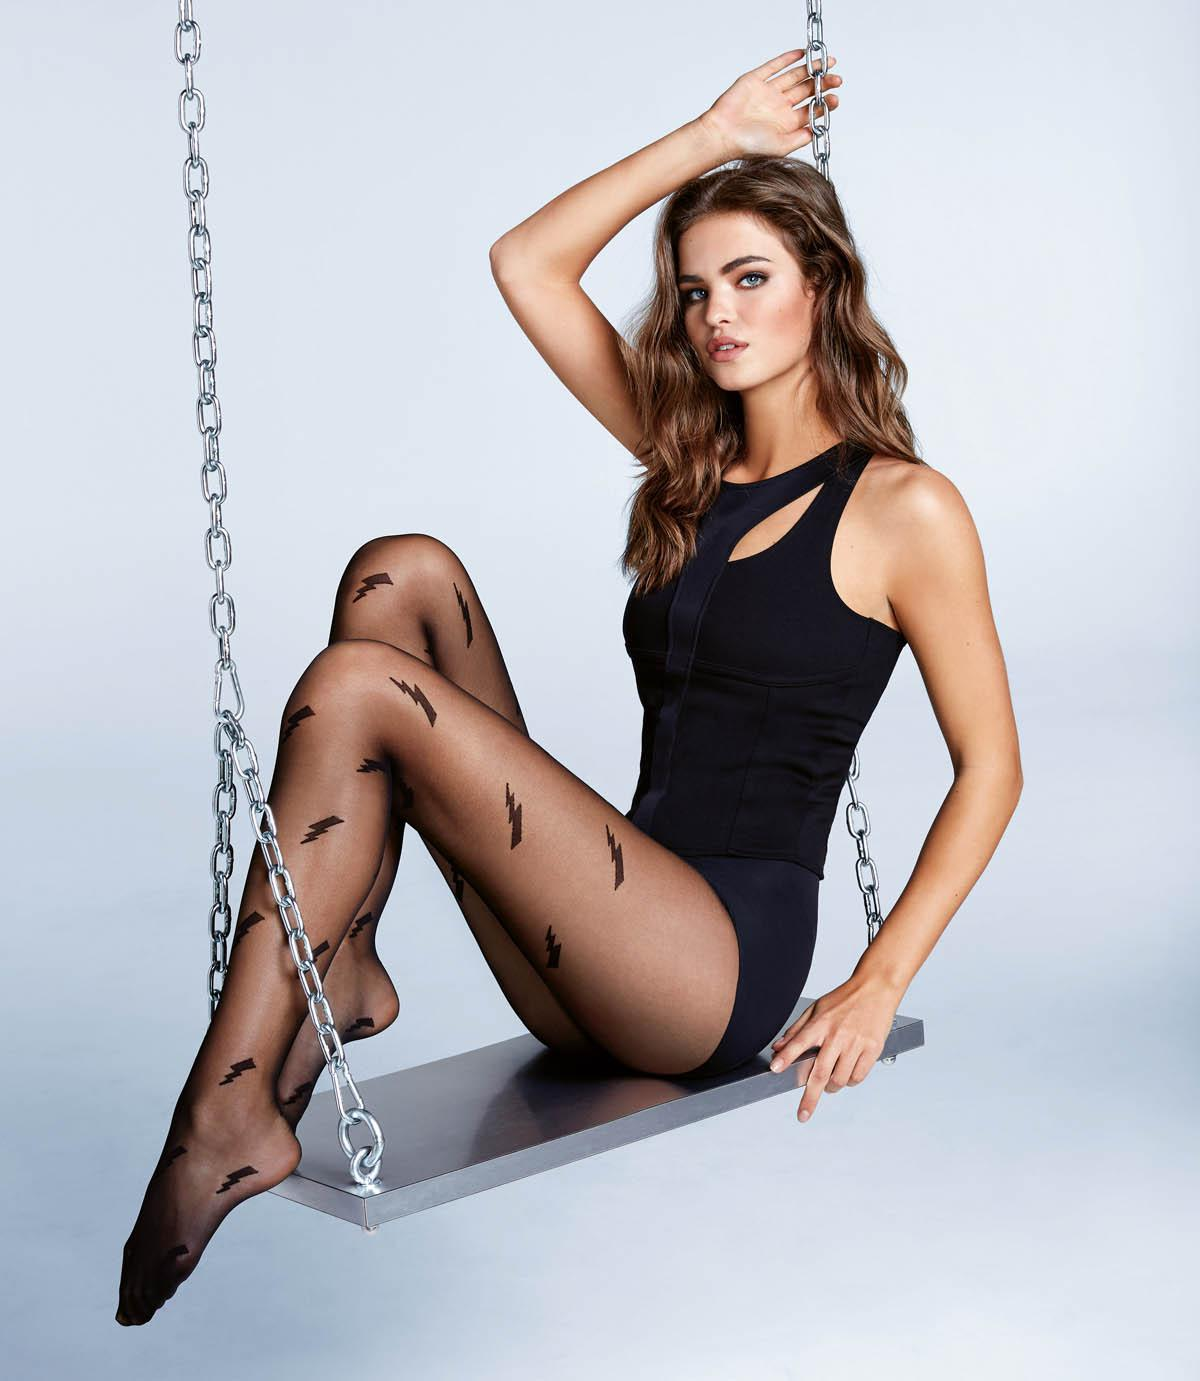 Spring Girls Wallpapers Calzedonia Spring Legwear Trends Calin Group S A